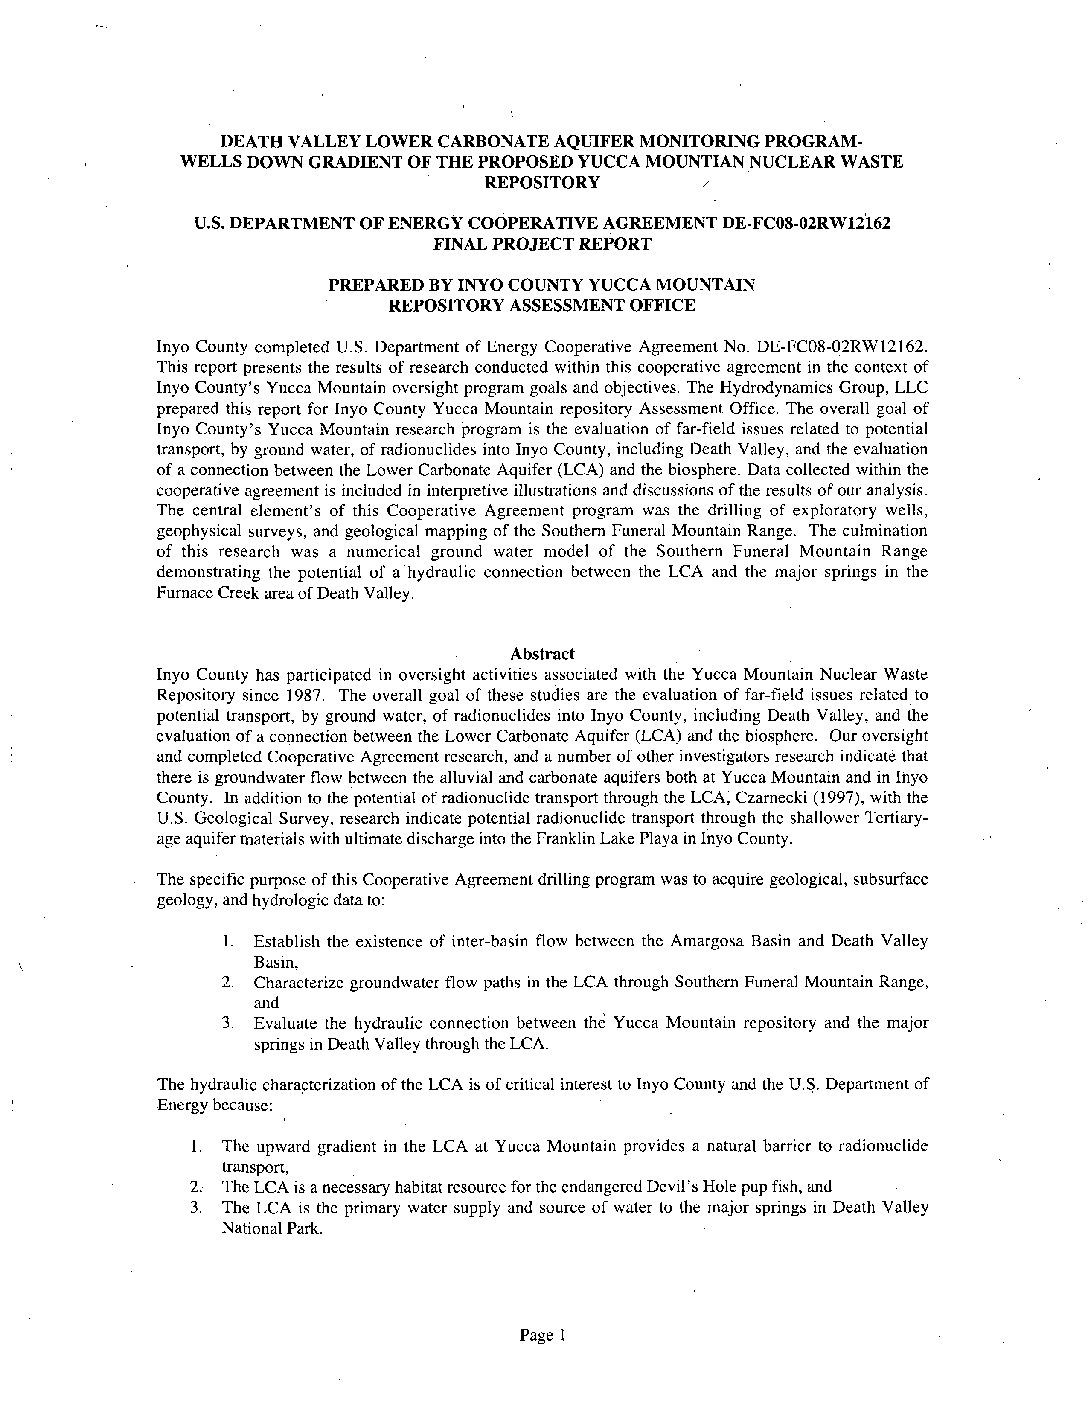 Death Valley lower carbonate aquifer monitoring program—Wells down gradient of the proposed Yucca Mountain nuclear waste repository: U.S. Department of Energy Cooperative Agreement DE-FCO8-02RW12162 Final Project Report